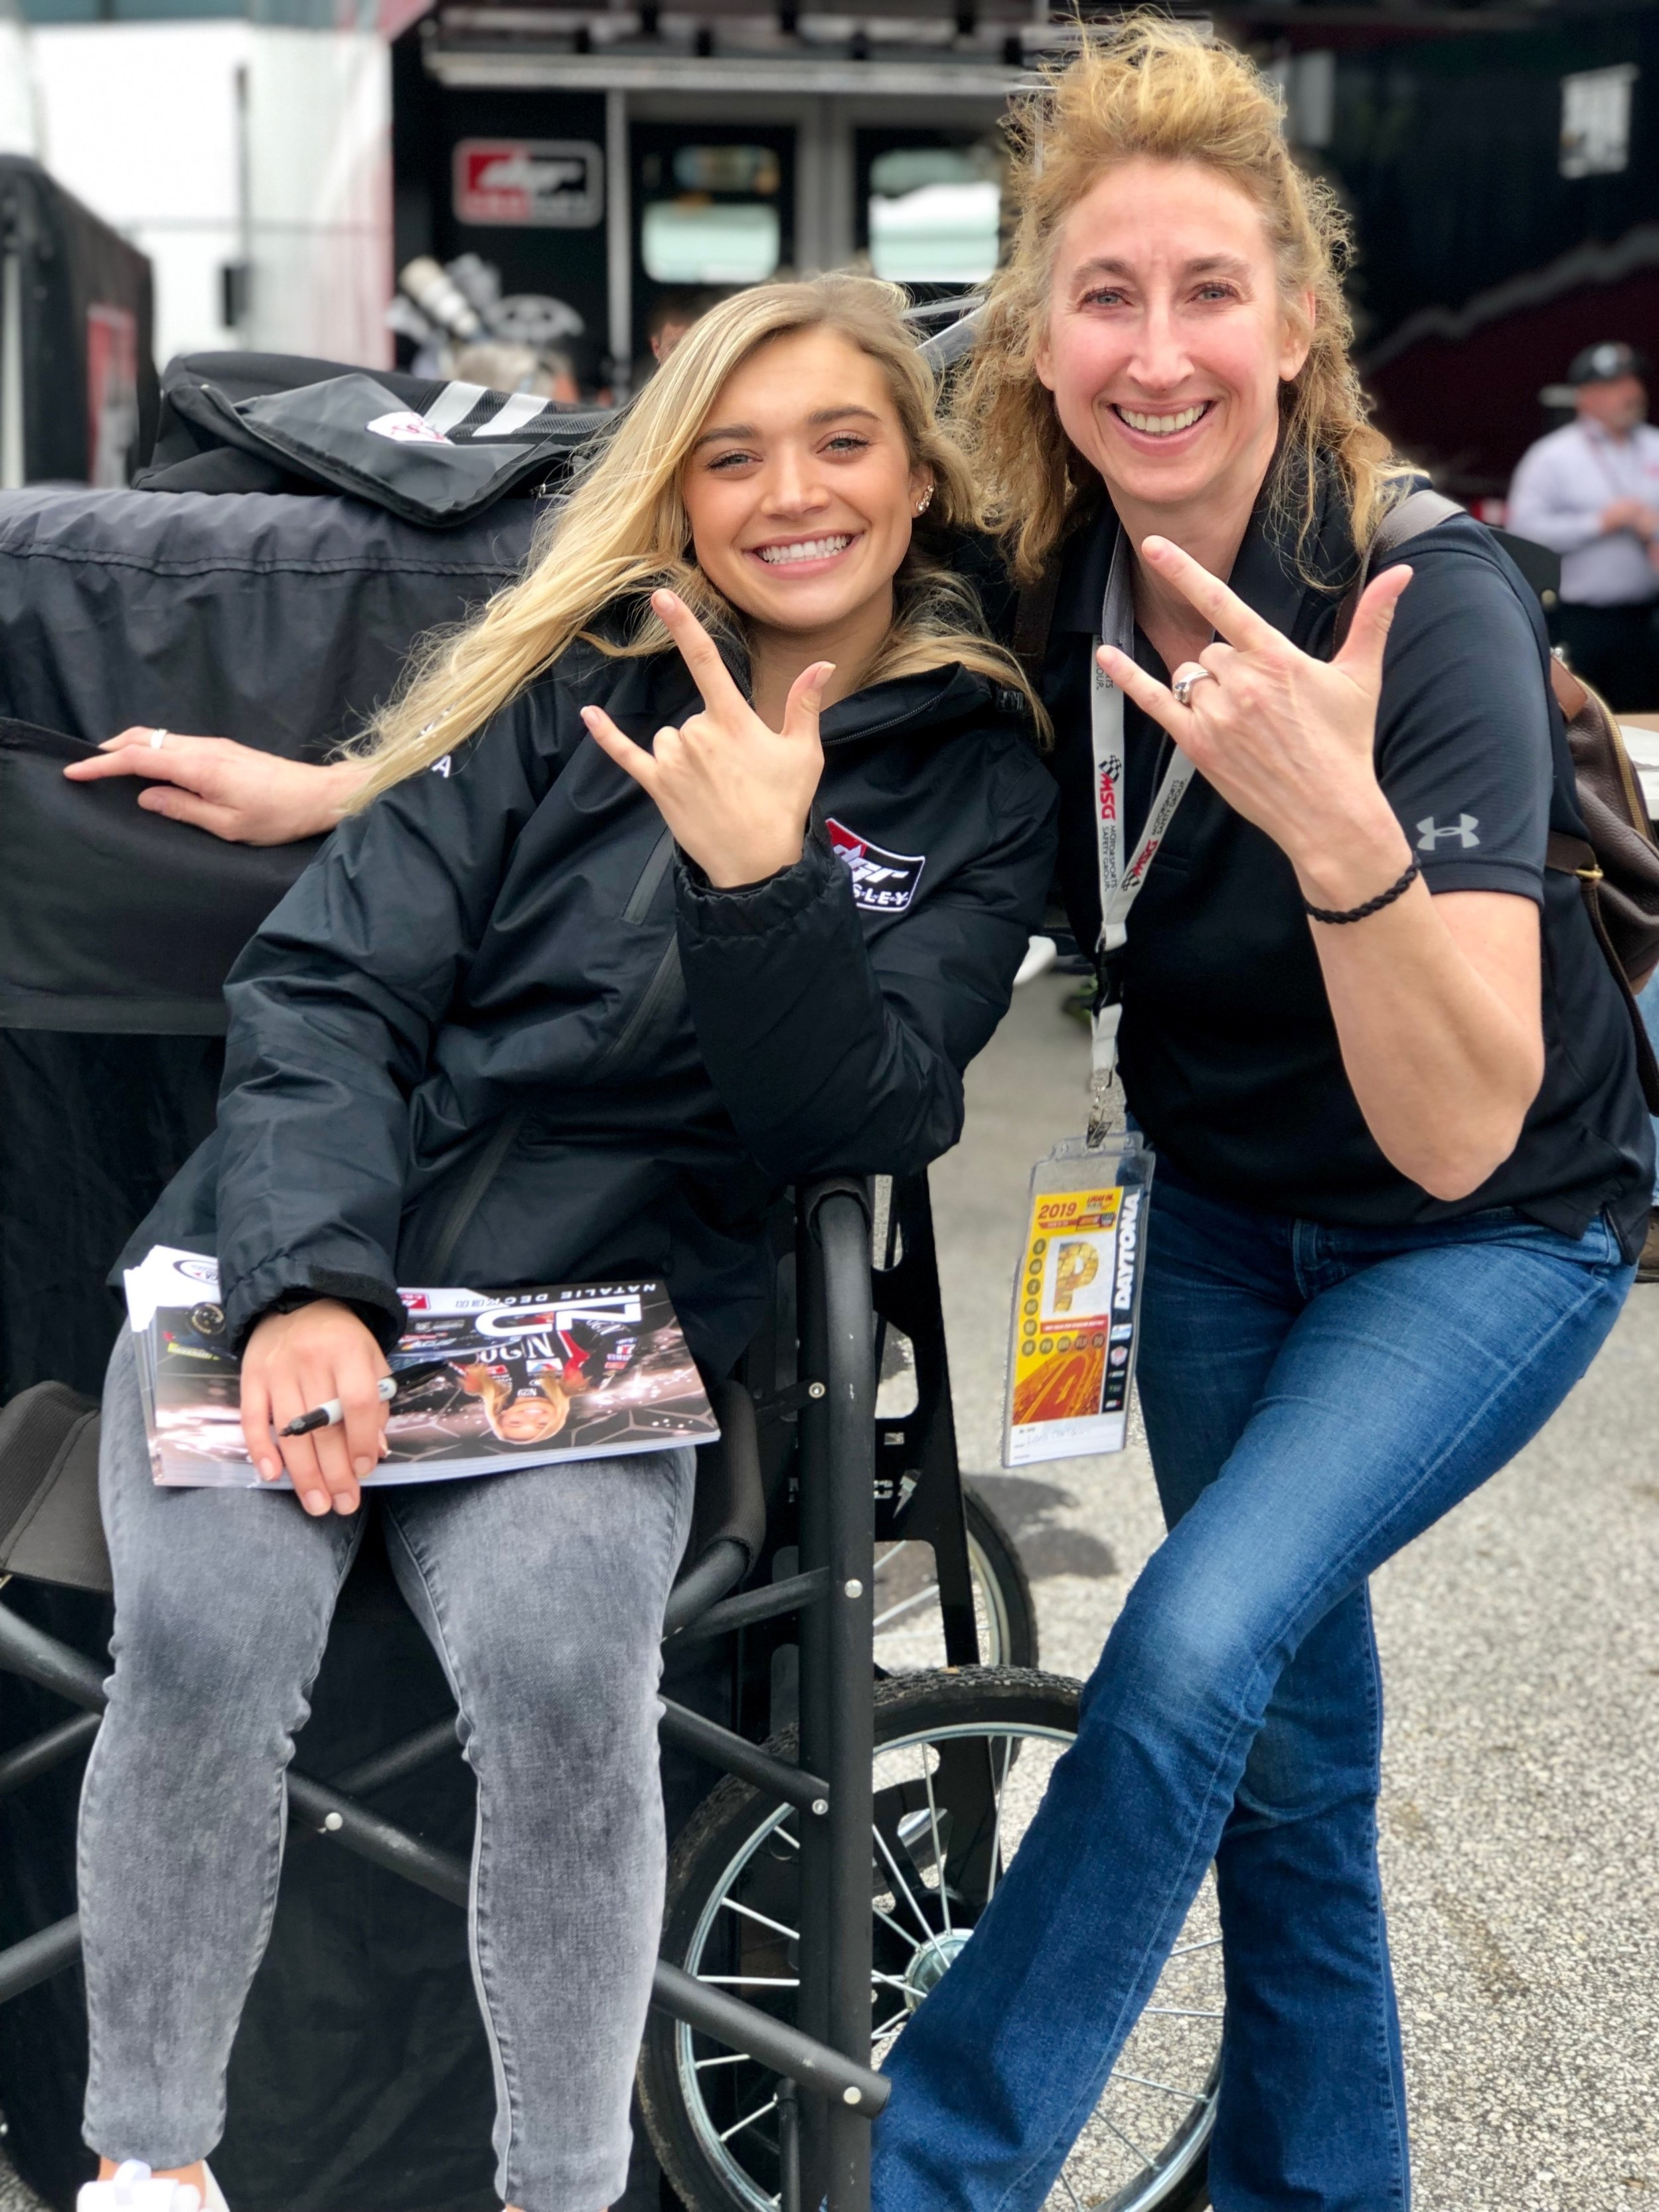 ARCA driver Natalie Decker and I traded the snow from the Austrian Alps for palm trees in Daytona.